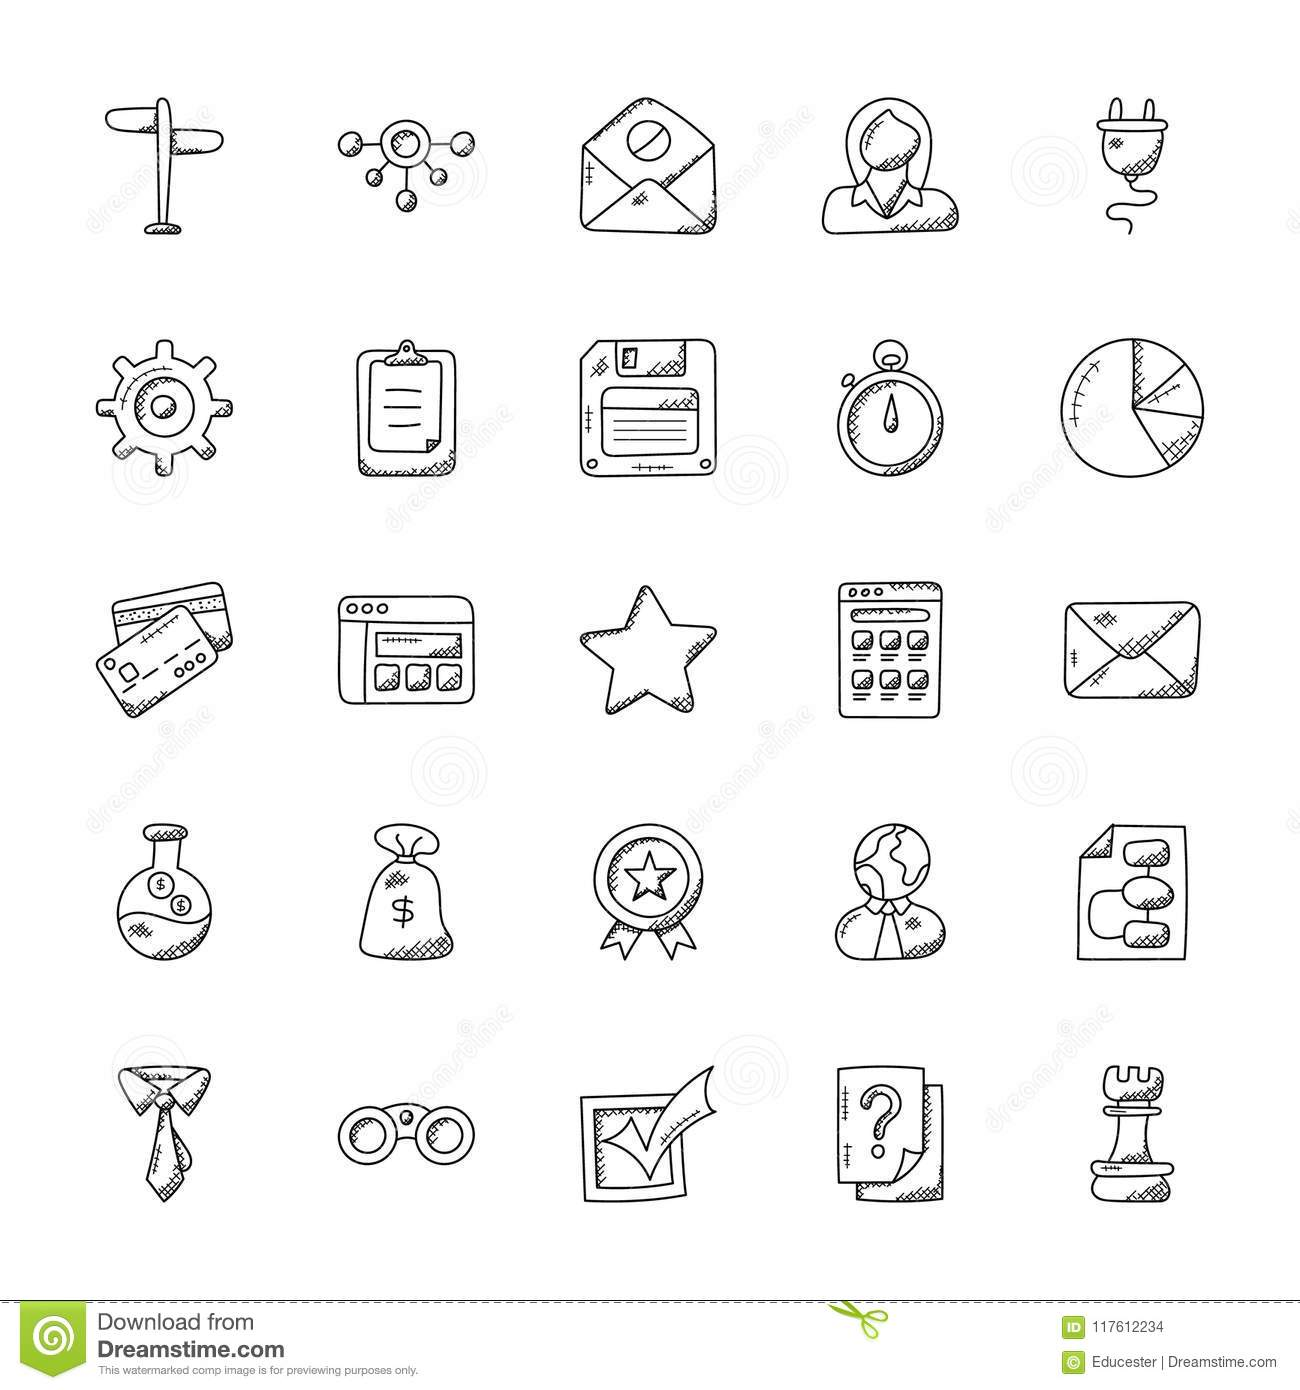 Collection Of Office Doodle Icons Stock Illustration - Illustration